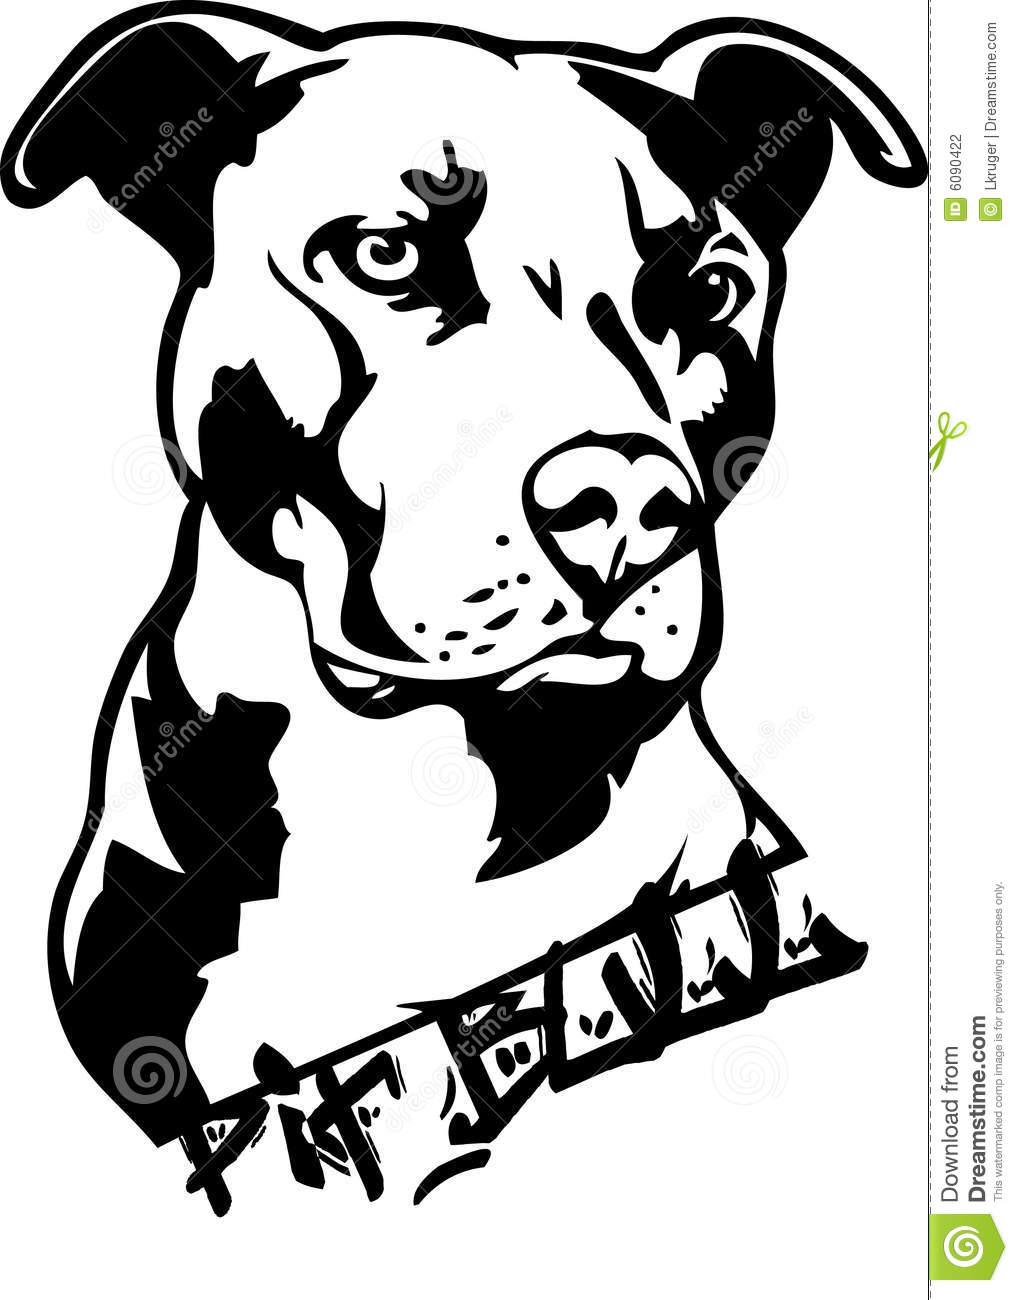 Pit Bull clipart american pitbull Dog Silhouette By Pit Pit